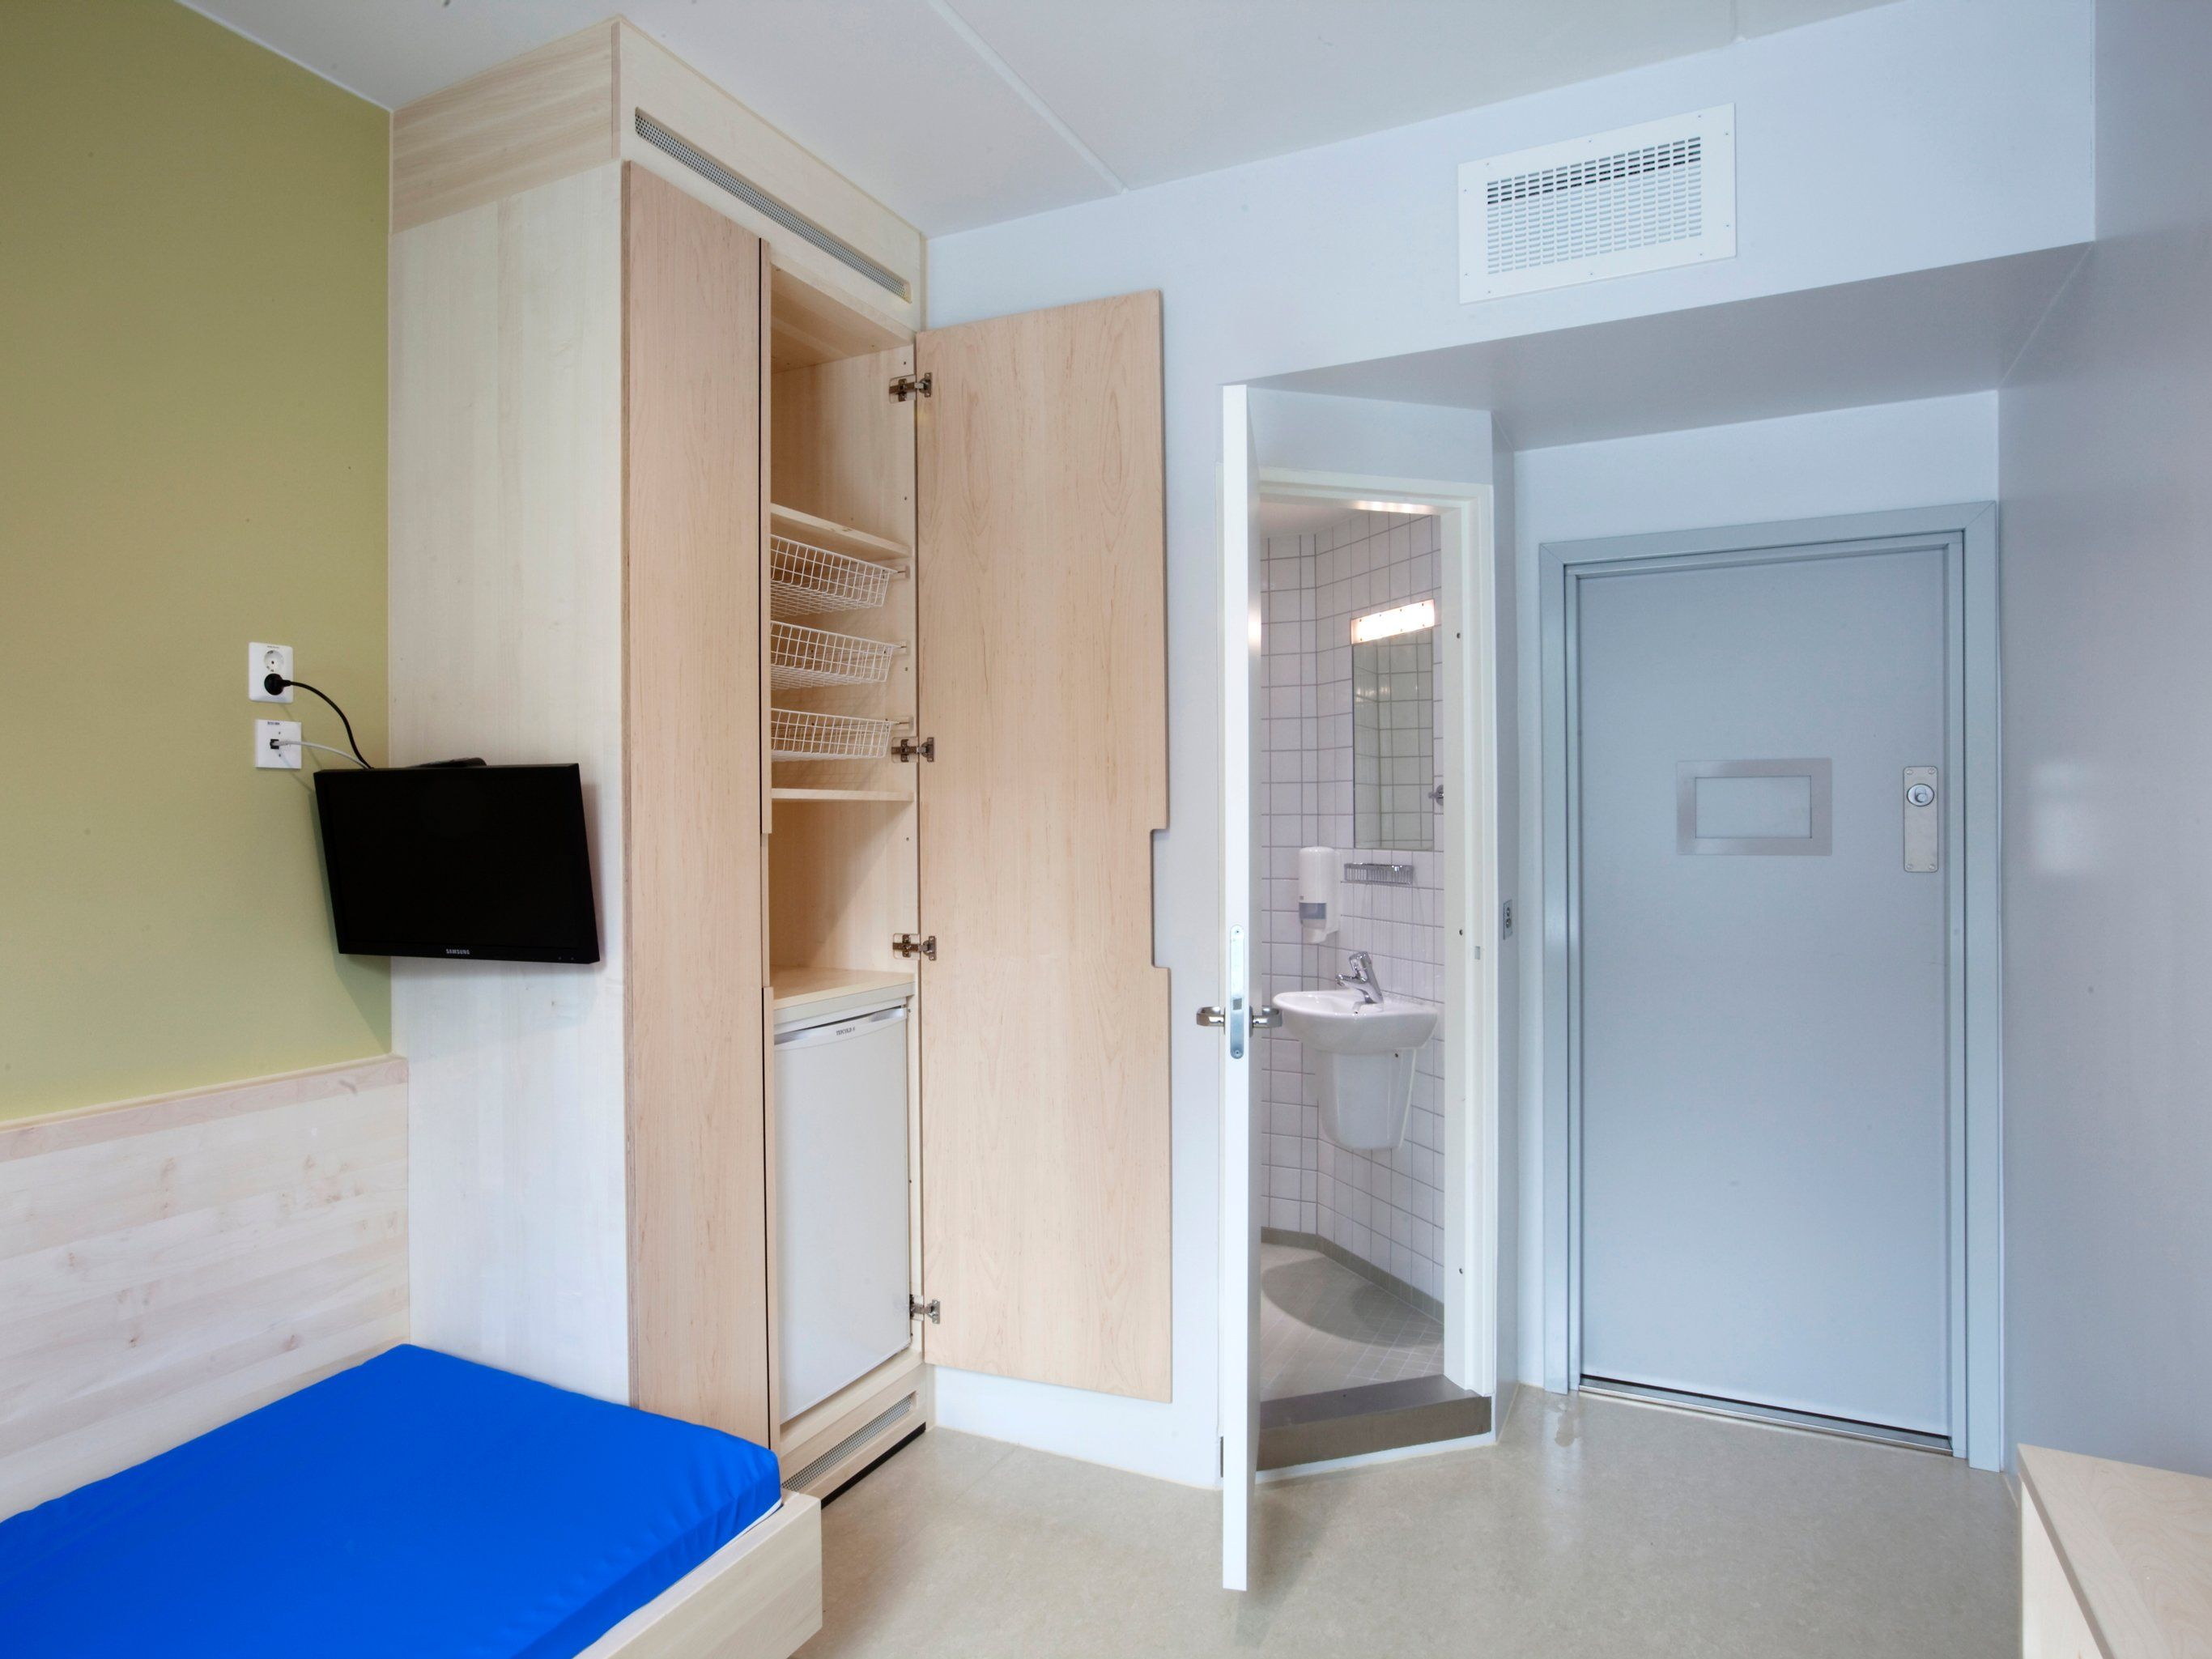 Photos Of Maximum Security Prisons In Norway And The Us Reveal The Extremes Of Prison Life Prison Cell Prison Norway